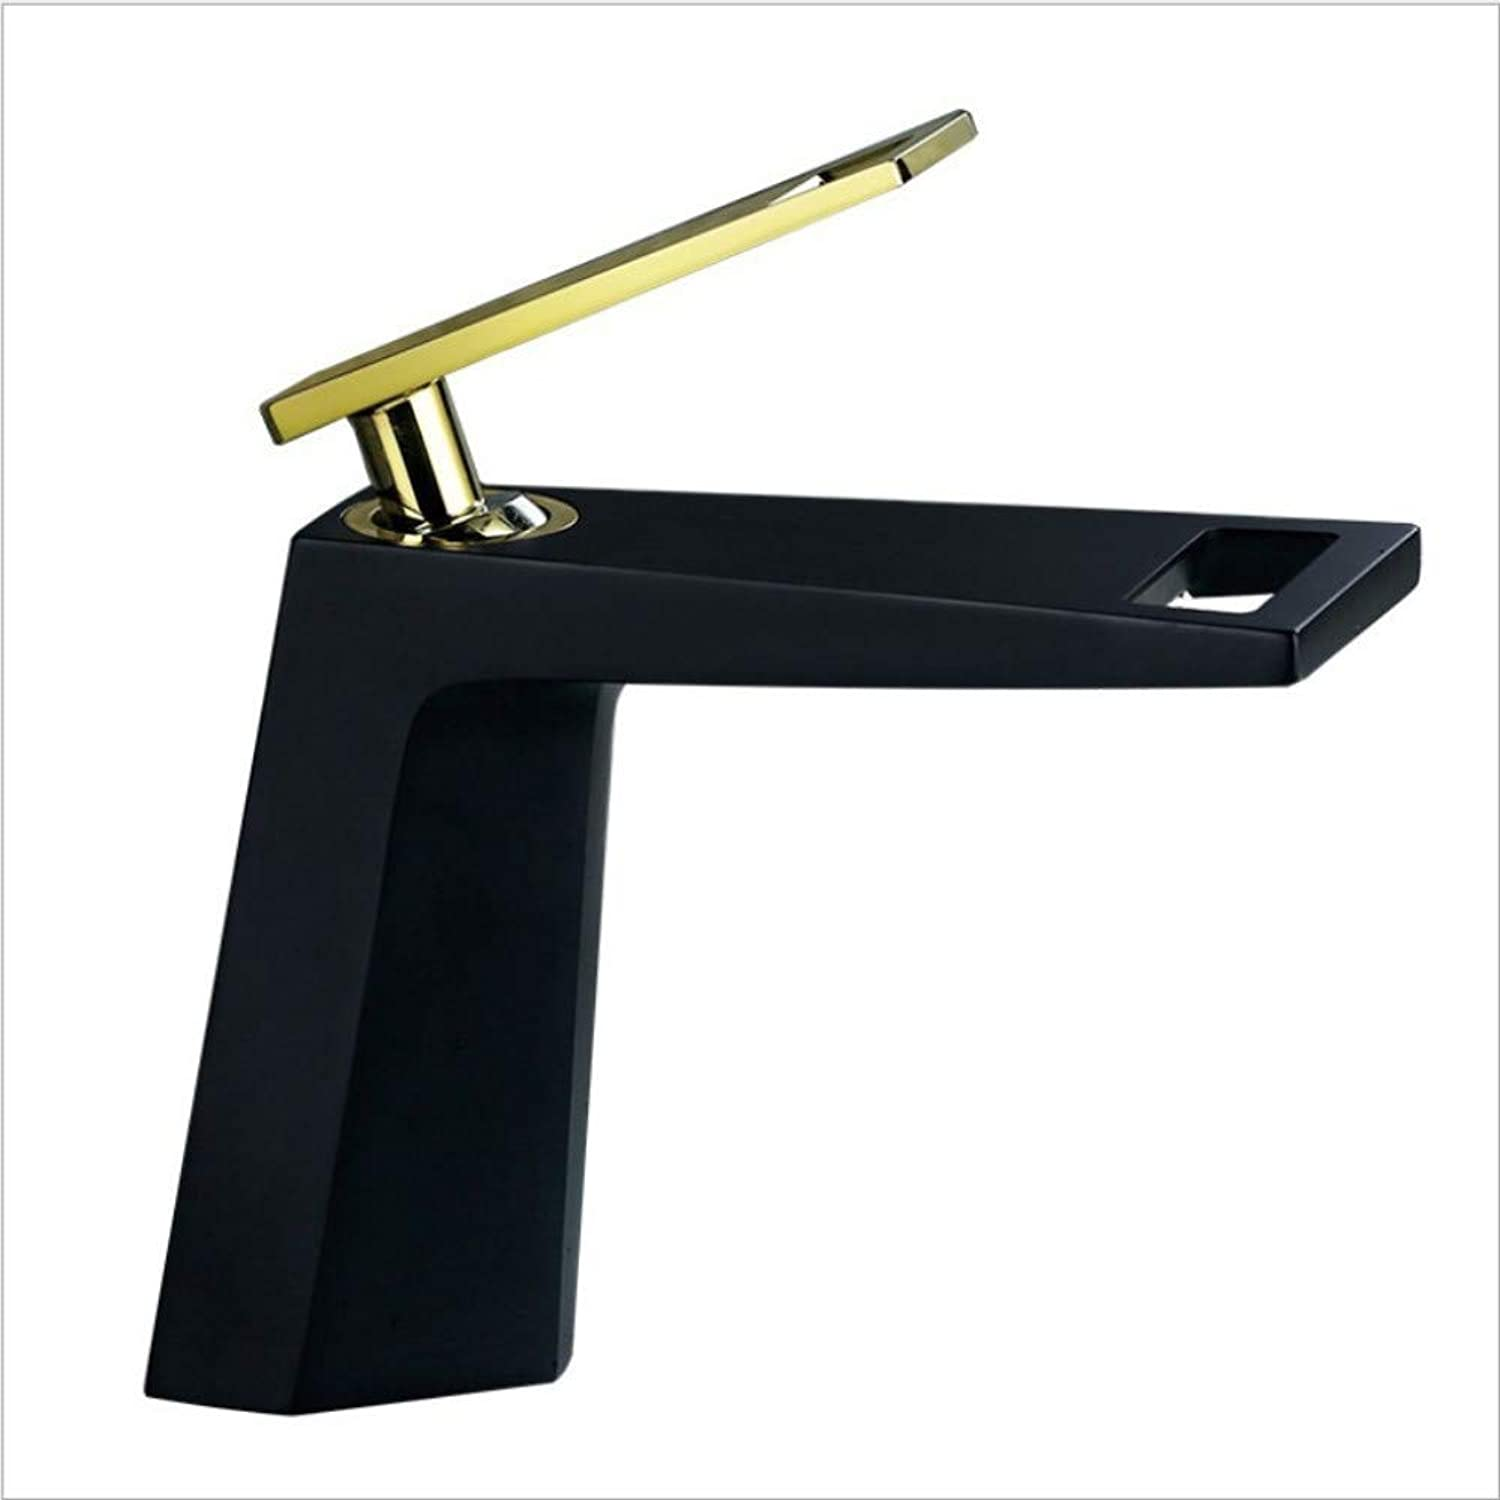 Kitchen Sink Taps Bathroom Sink Taps Copper Basin Faucet Black Faucet Bathroom Wash Basin Hot And Cold Water Mixing Waterfall Faucet